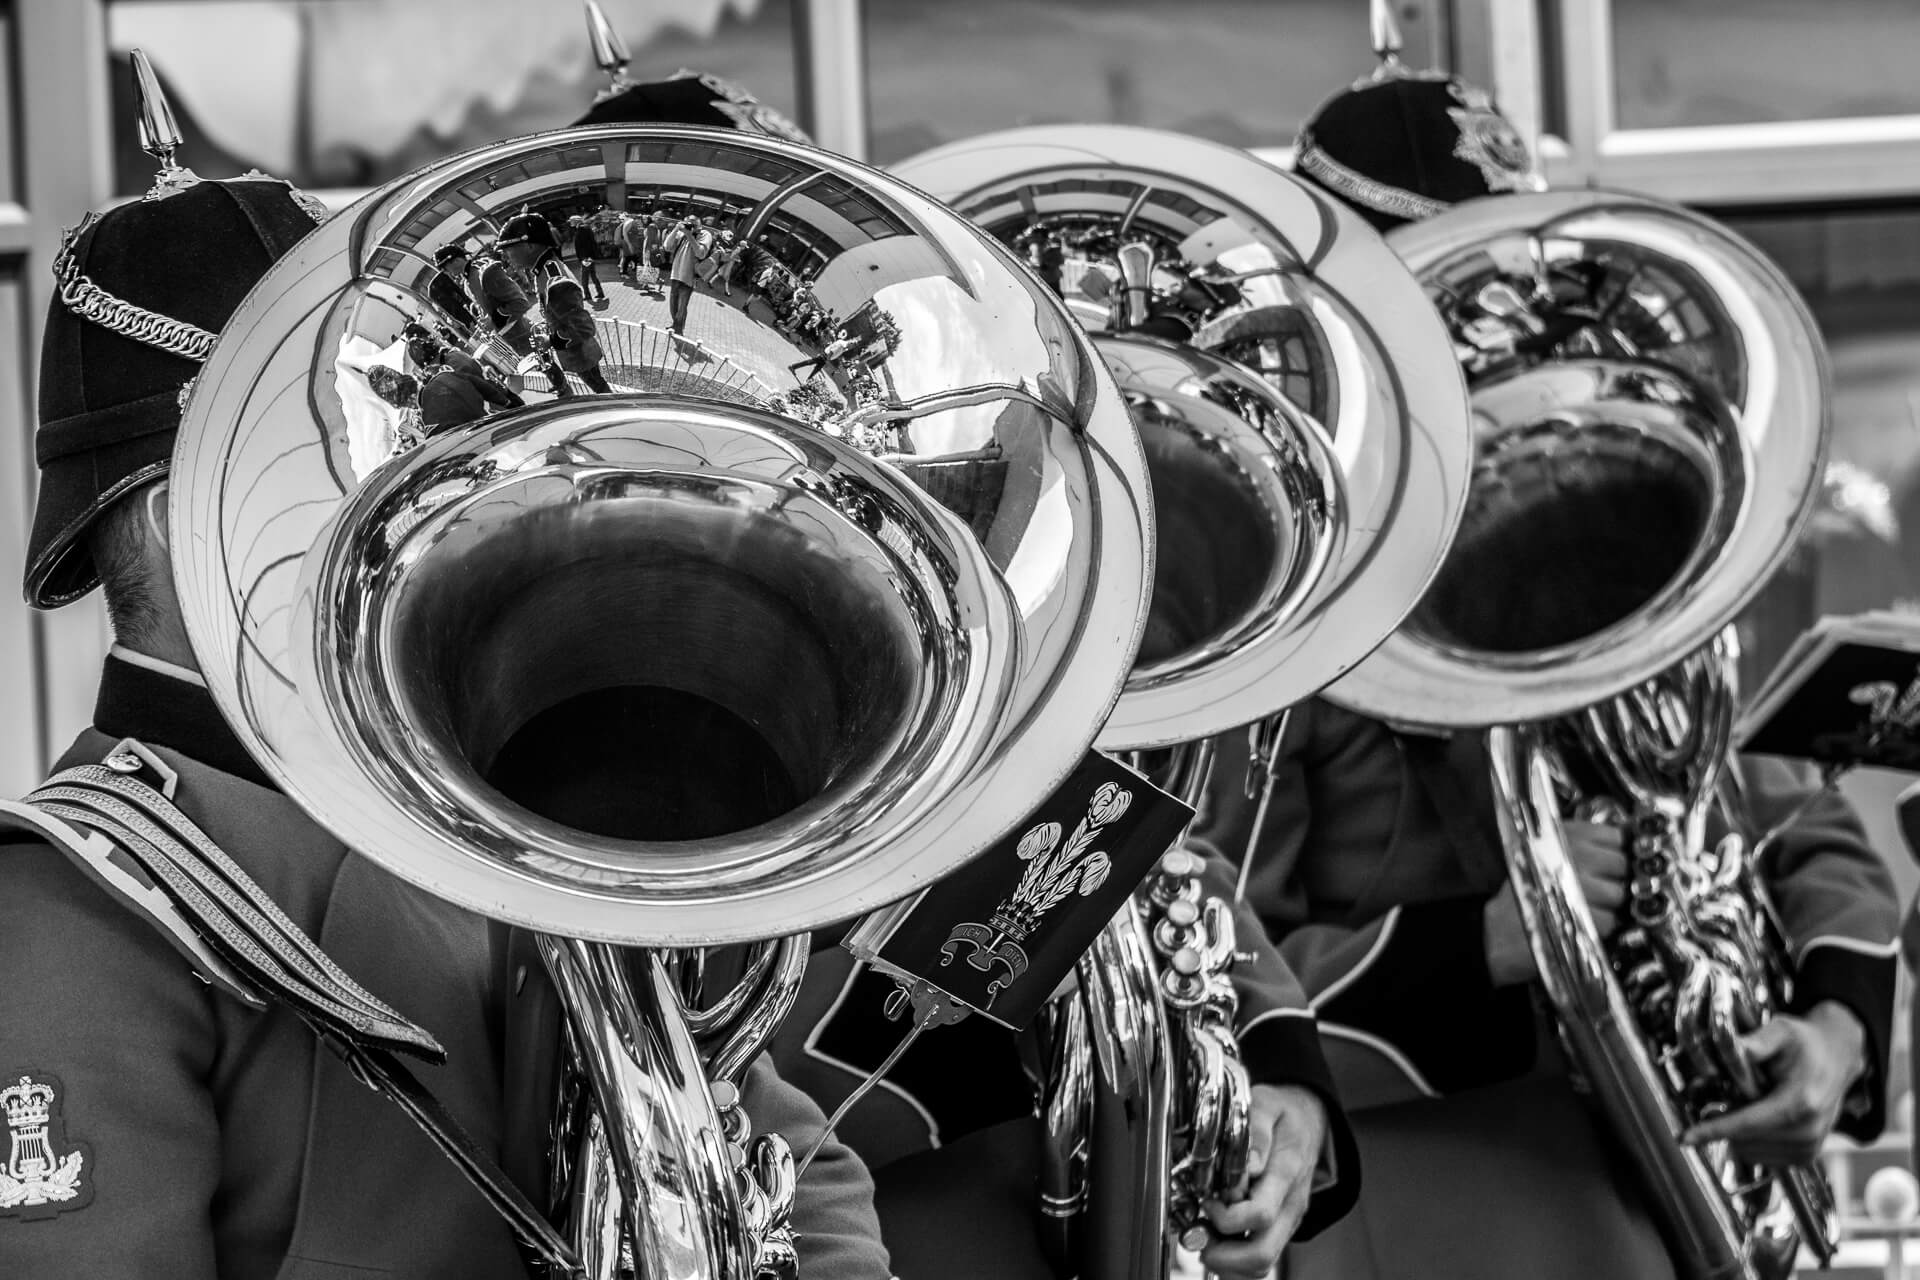 3 Army Bandsmen (Musicians) stand in the shade whilst waiting to play. Seen in black & white they are dressed in ceremonial dress and spiked ceremonial pith type helmets. They have their instruments slung across their chests mouthpieces at the ready.